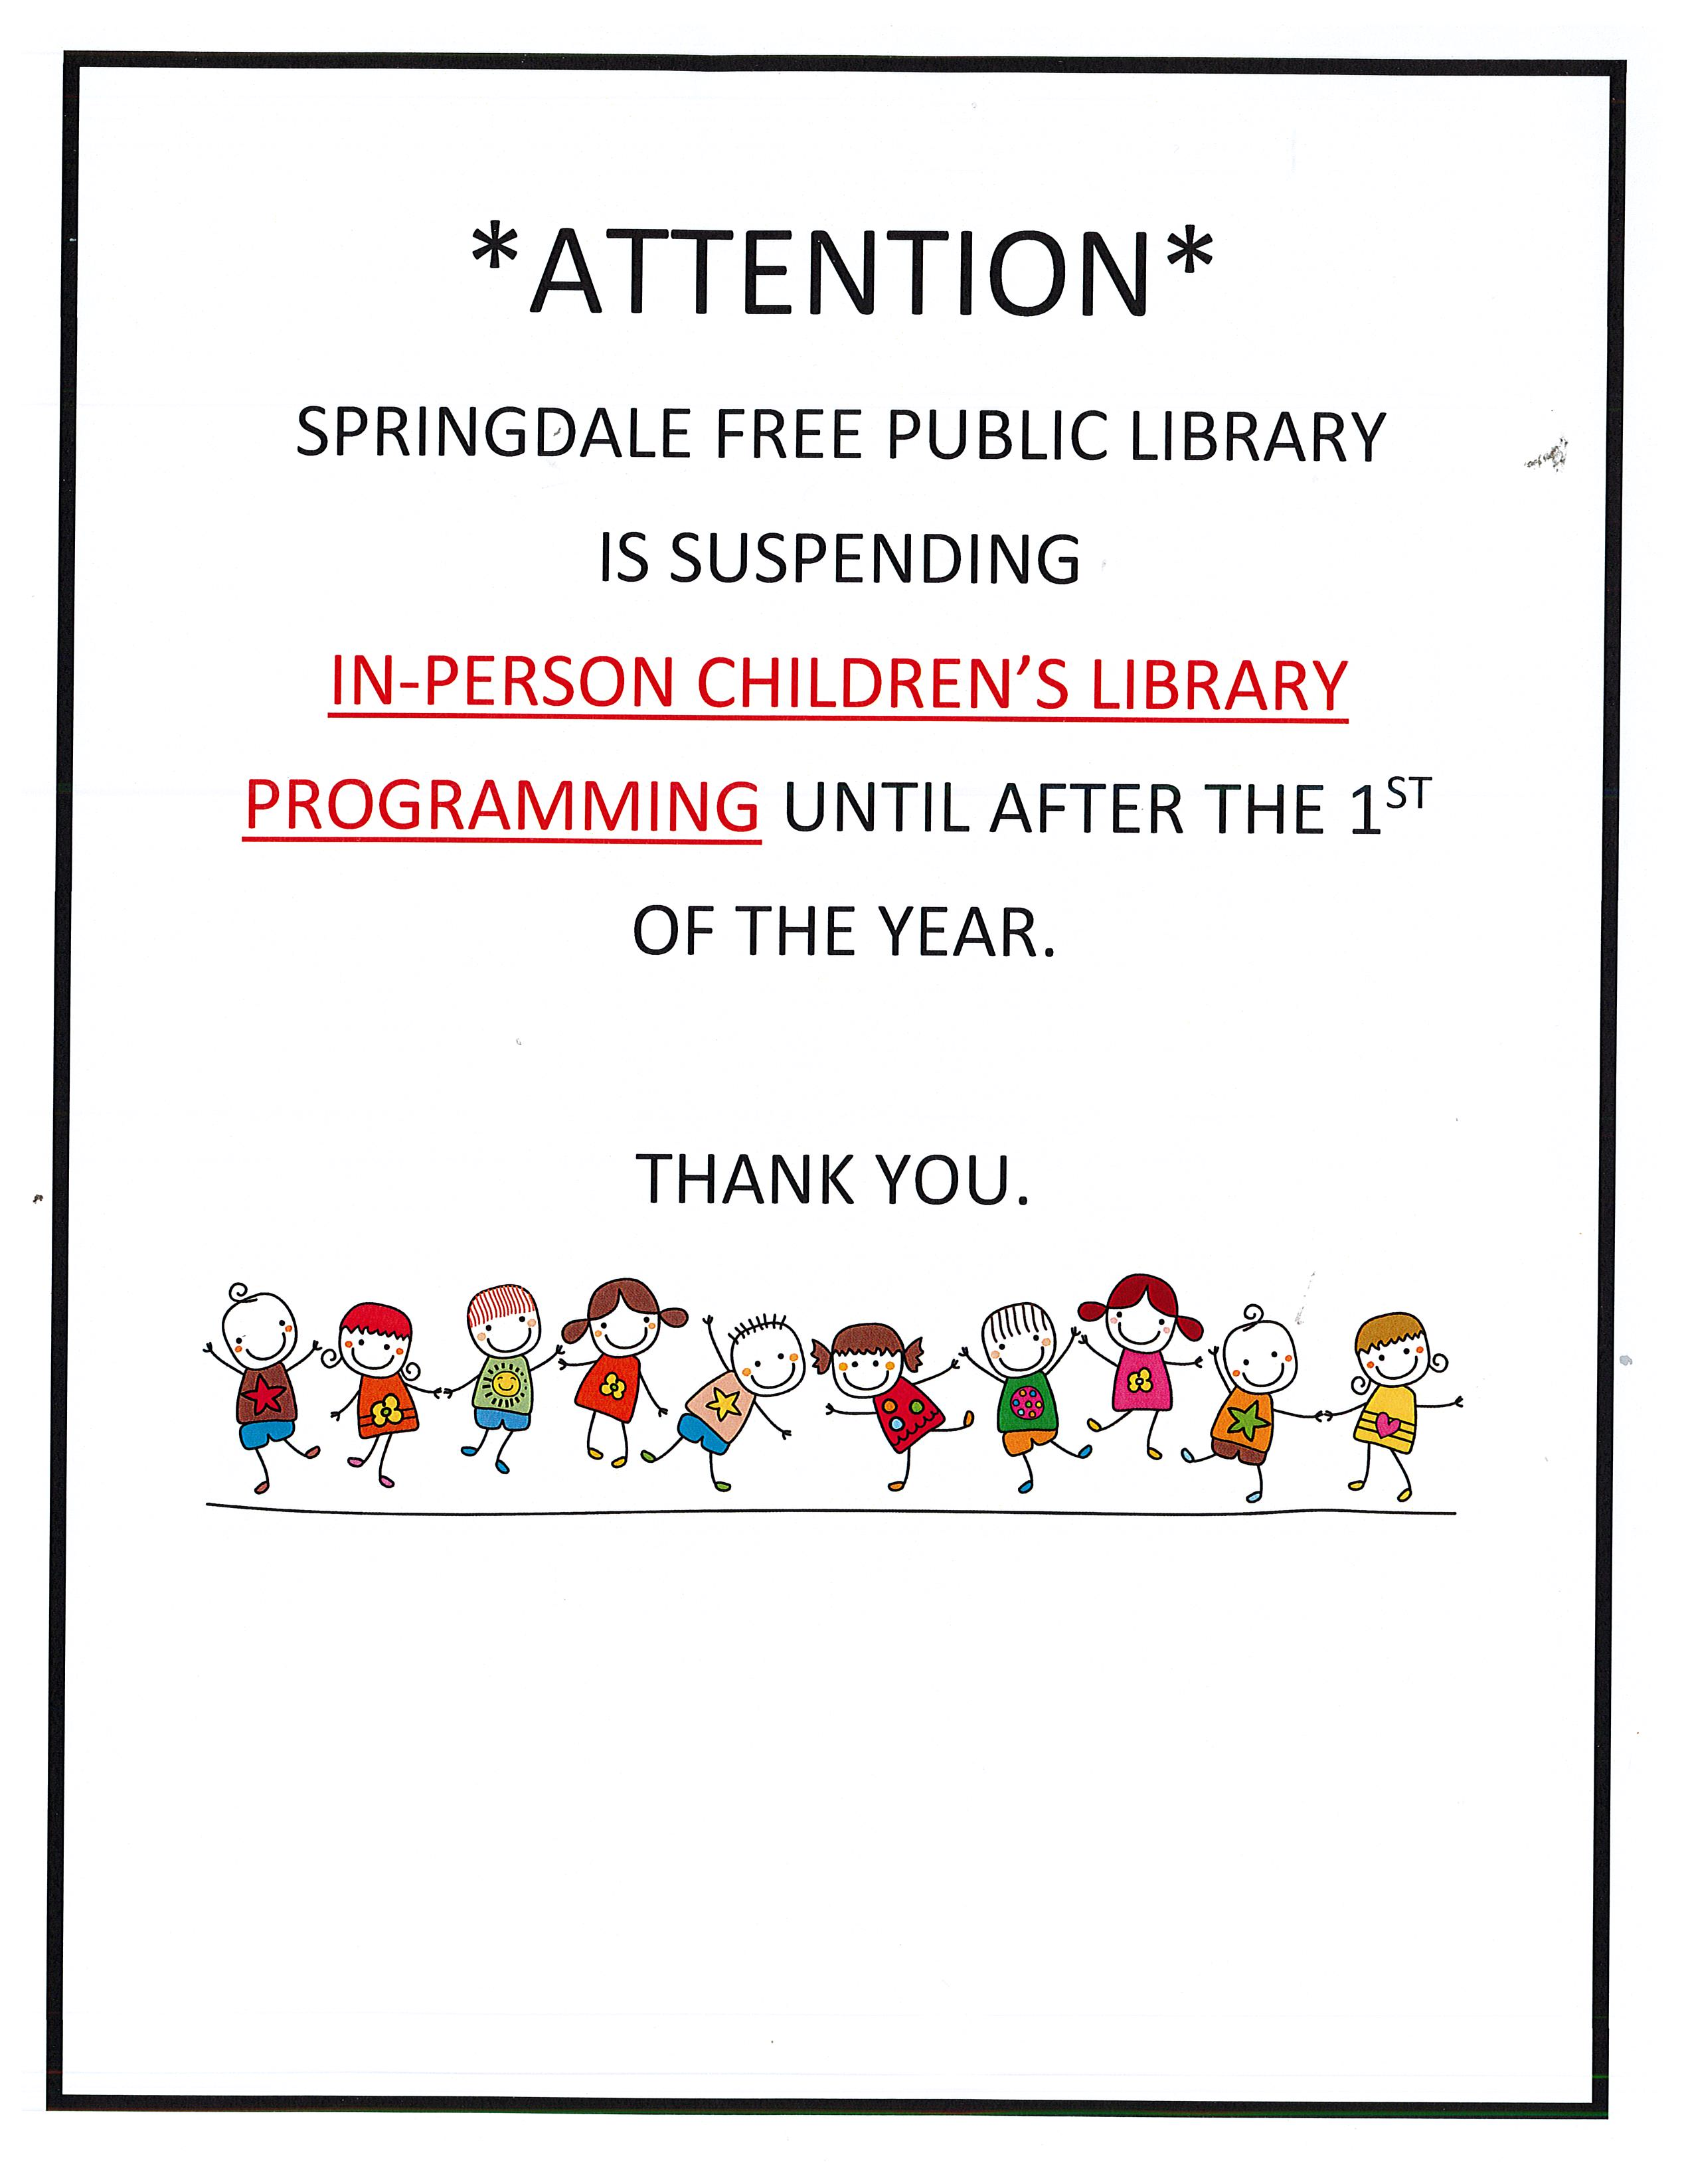 Changes to Children's Programming-Please Read